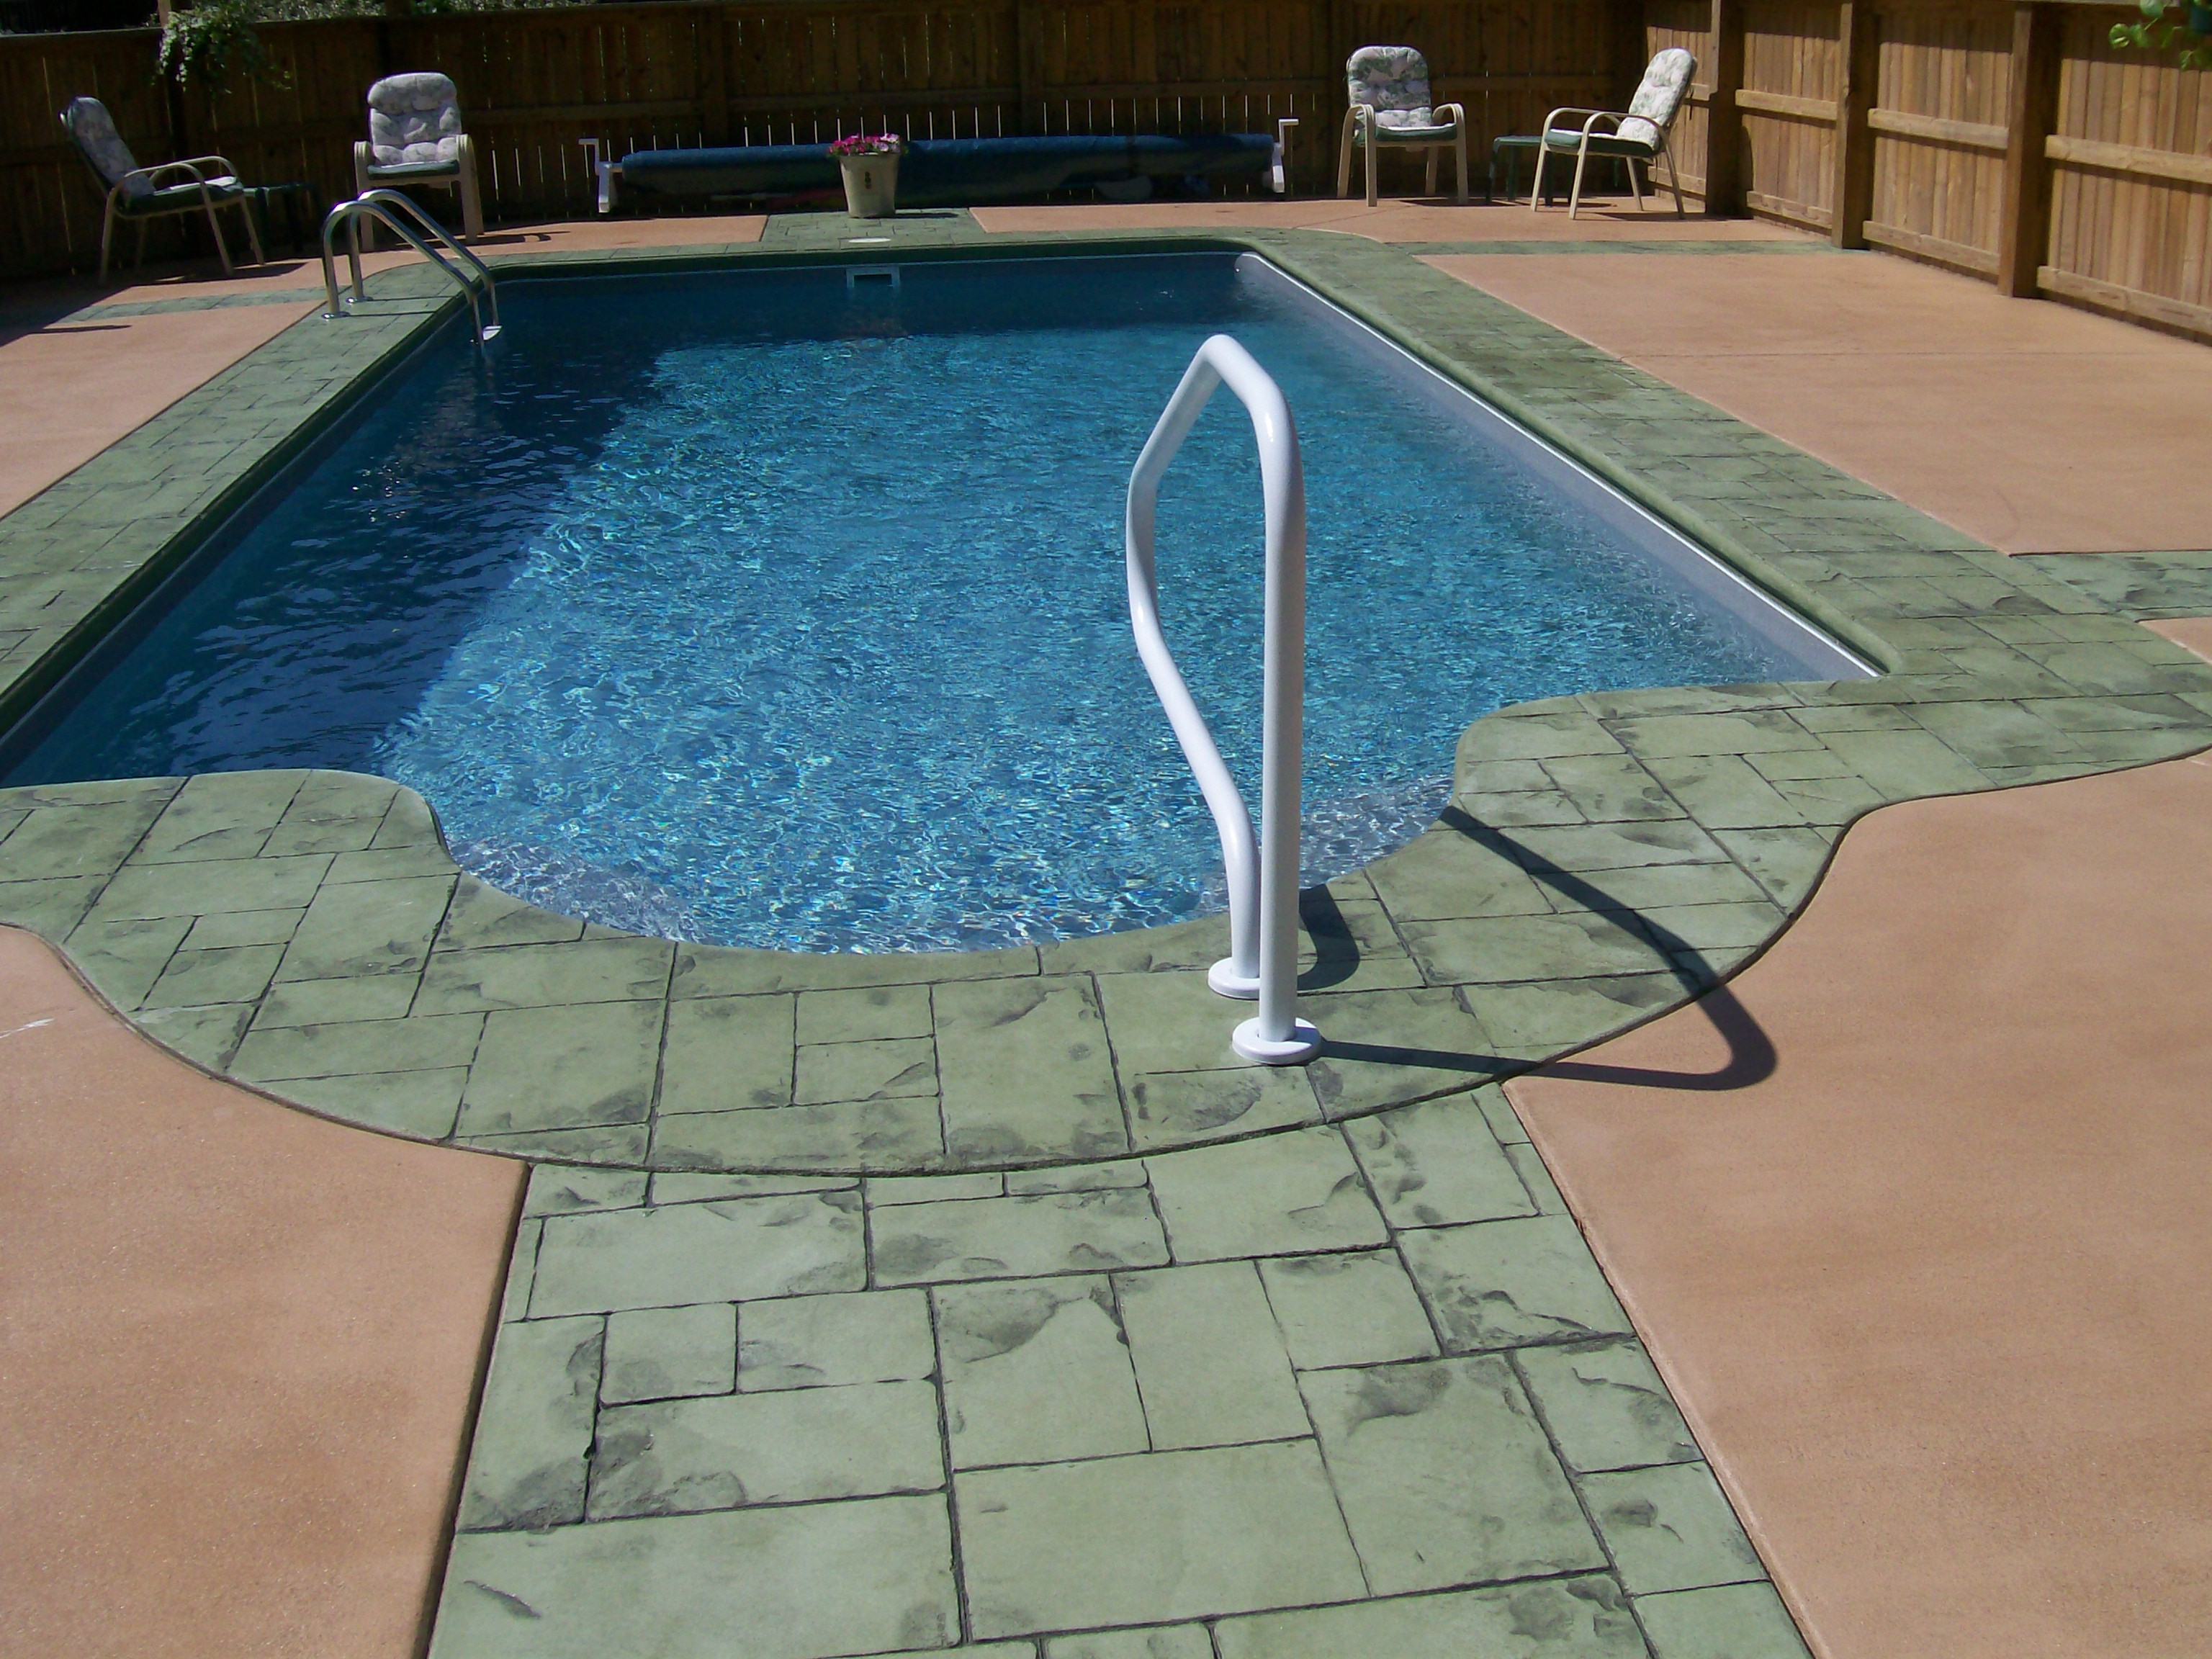 Colored Concrete Pool Deck Concrete Stamped Border Driveway With Broom Finish Interior.